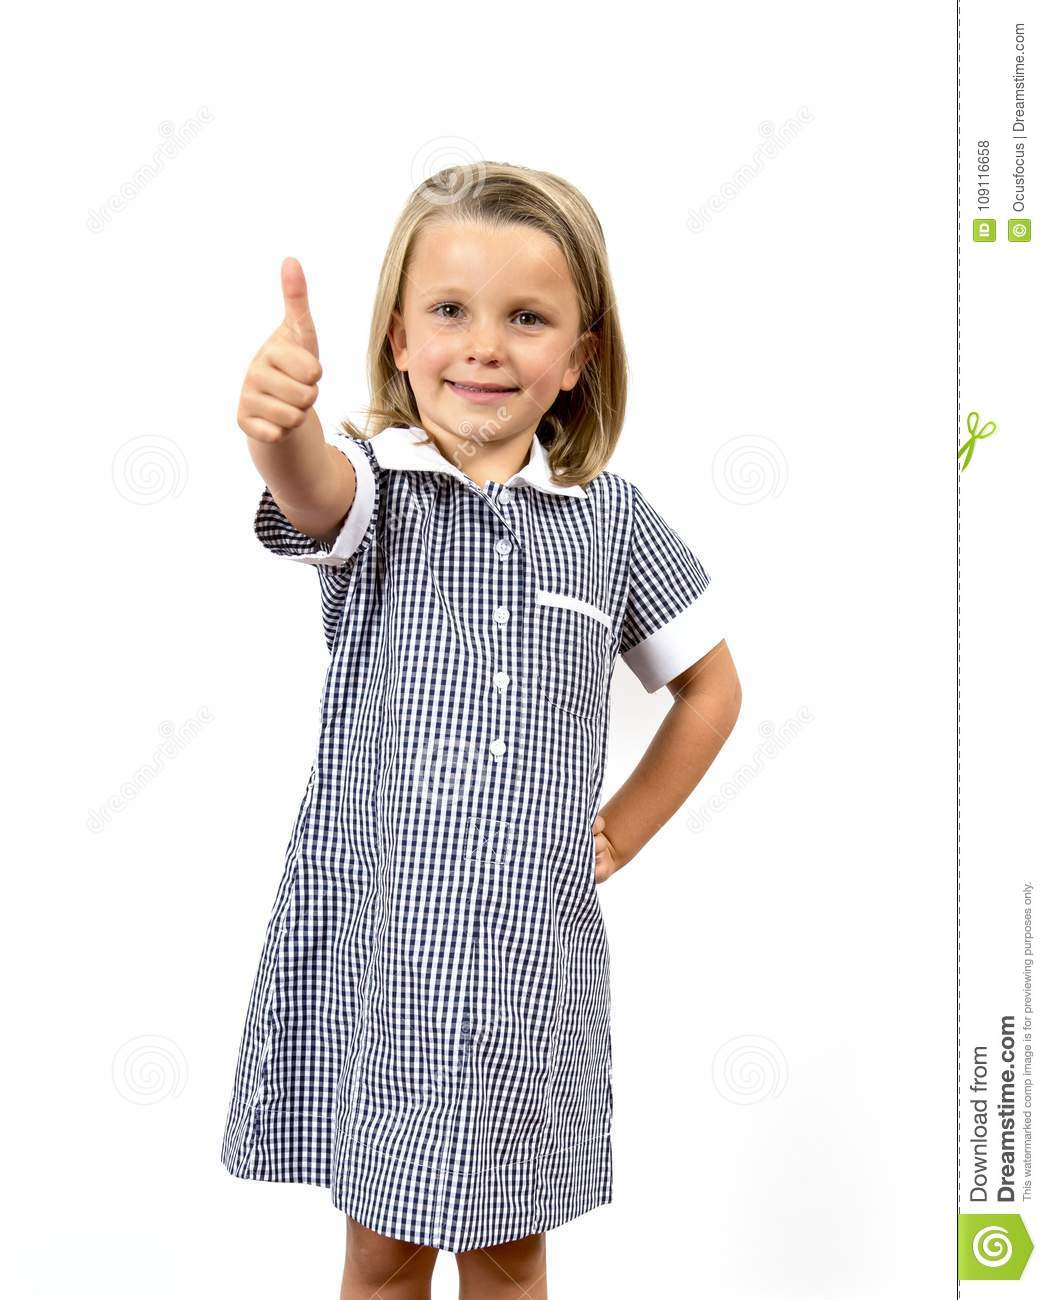 Young beautiful and happy child girl 6 to 8 years old blond hair and blue eyes smiling excited wearing school uniform isolated on